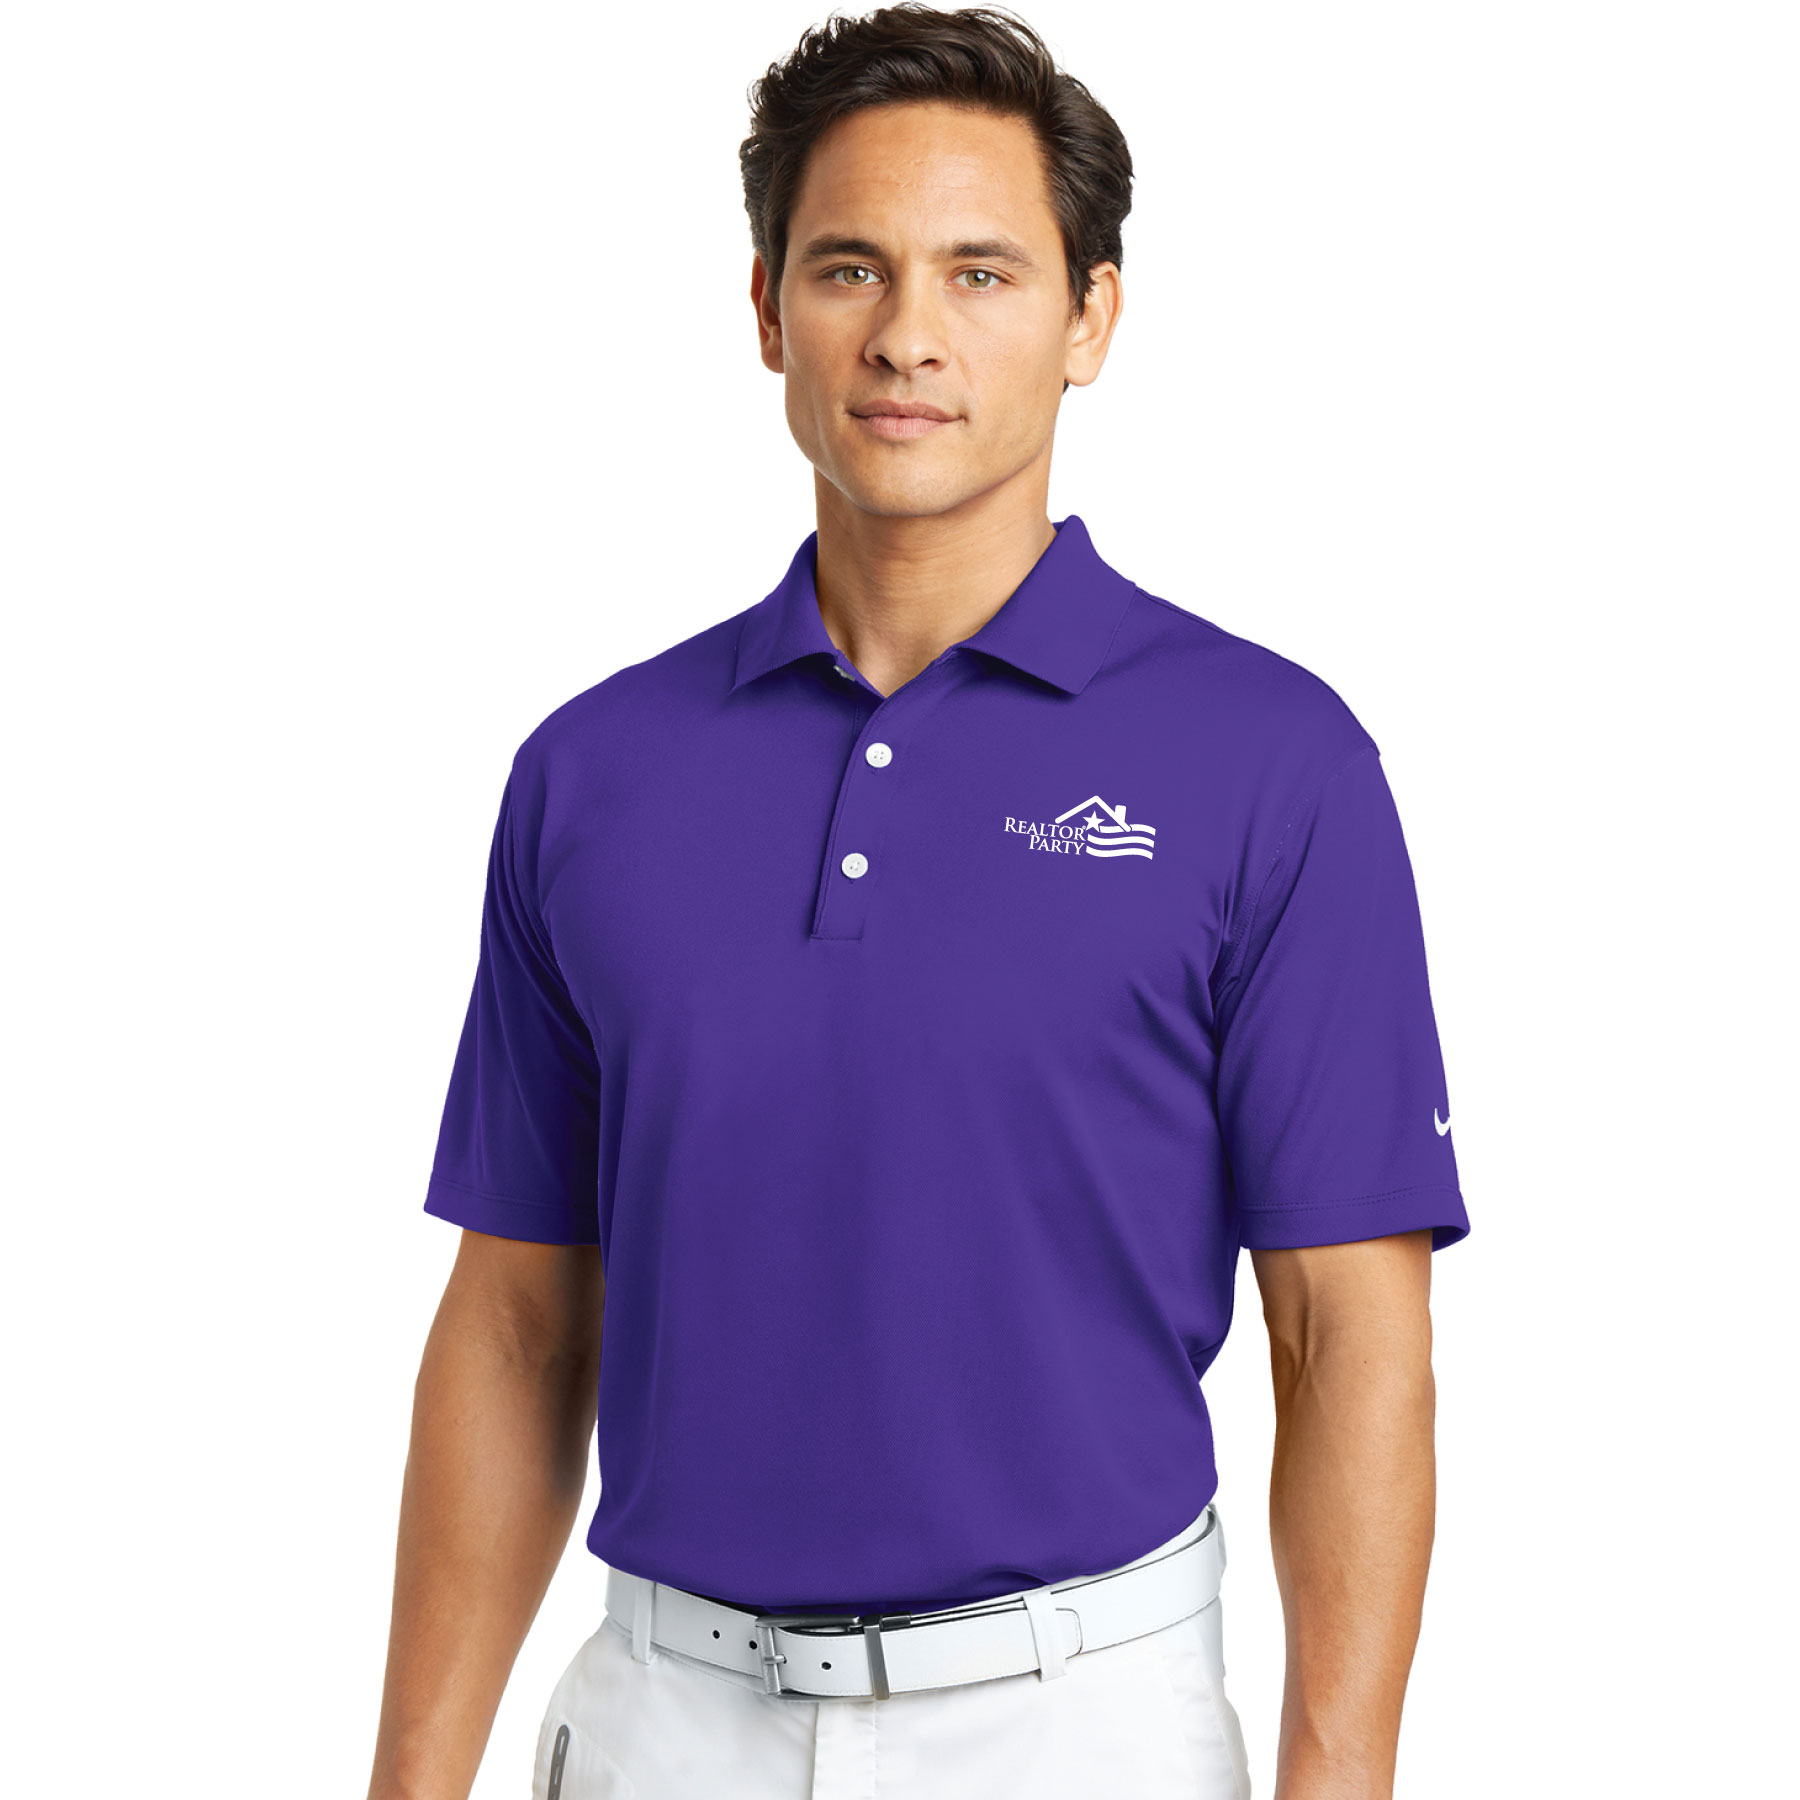 REALTOR® Party Nike® Tech Basic Dri-FIT® Polo Polos,Nikes,Swoshes,Golfs,Stripes,RP,RPAC,Parties,R.P.